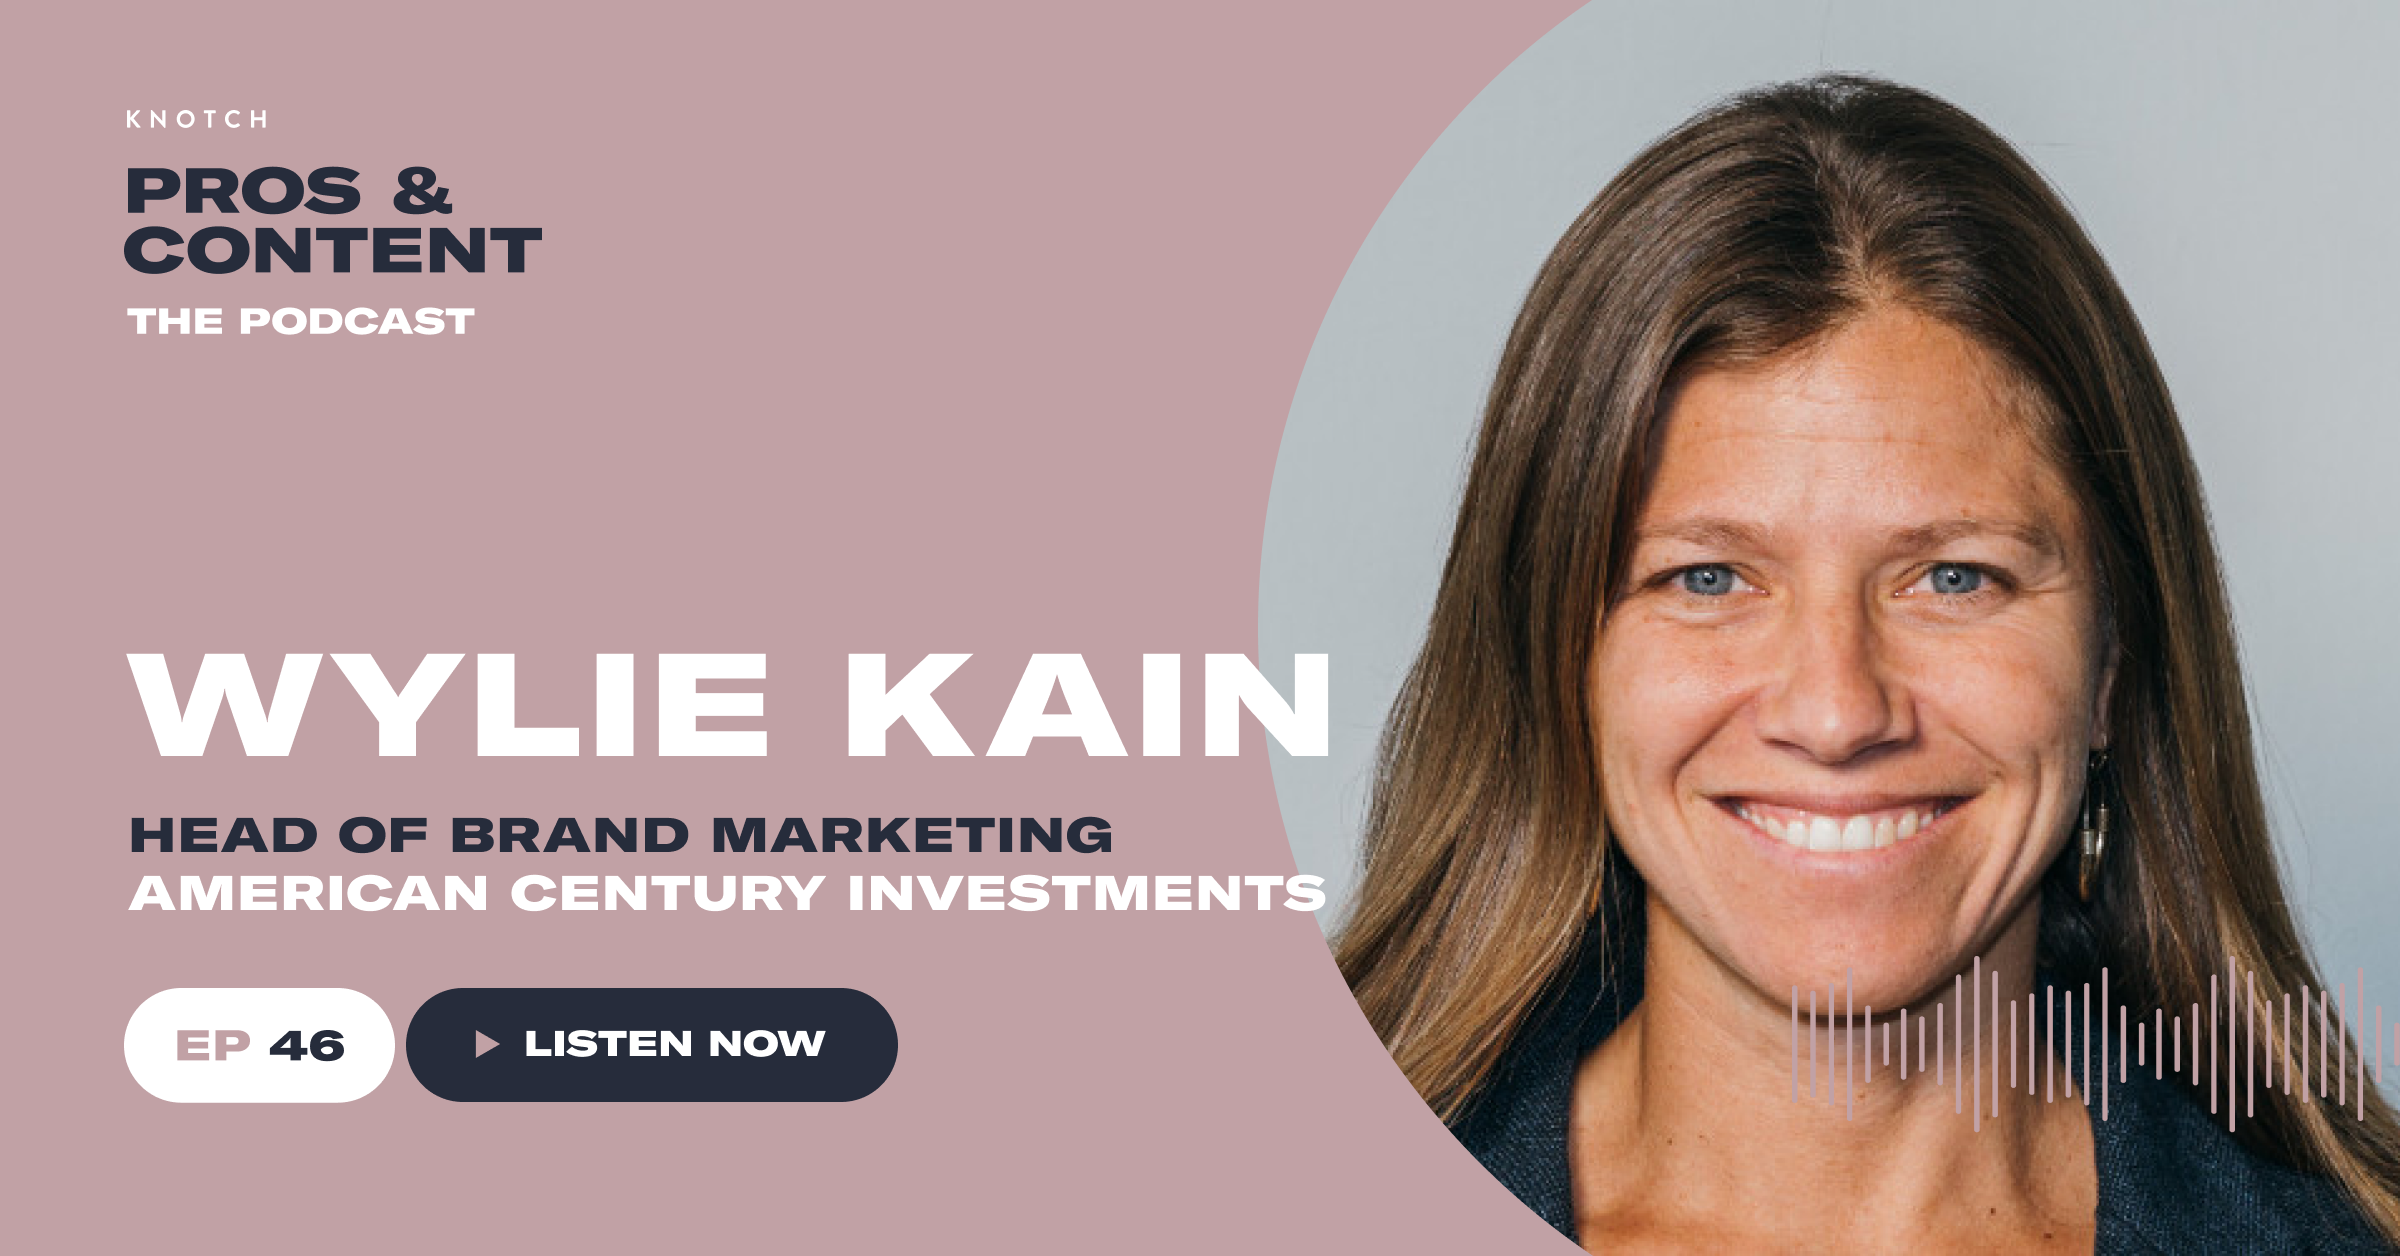 Pros & Content Podcast: Wylie Kain